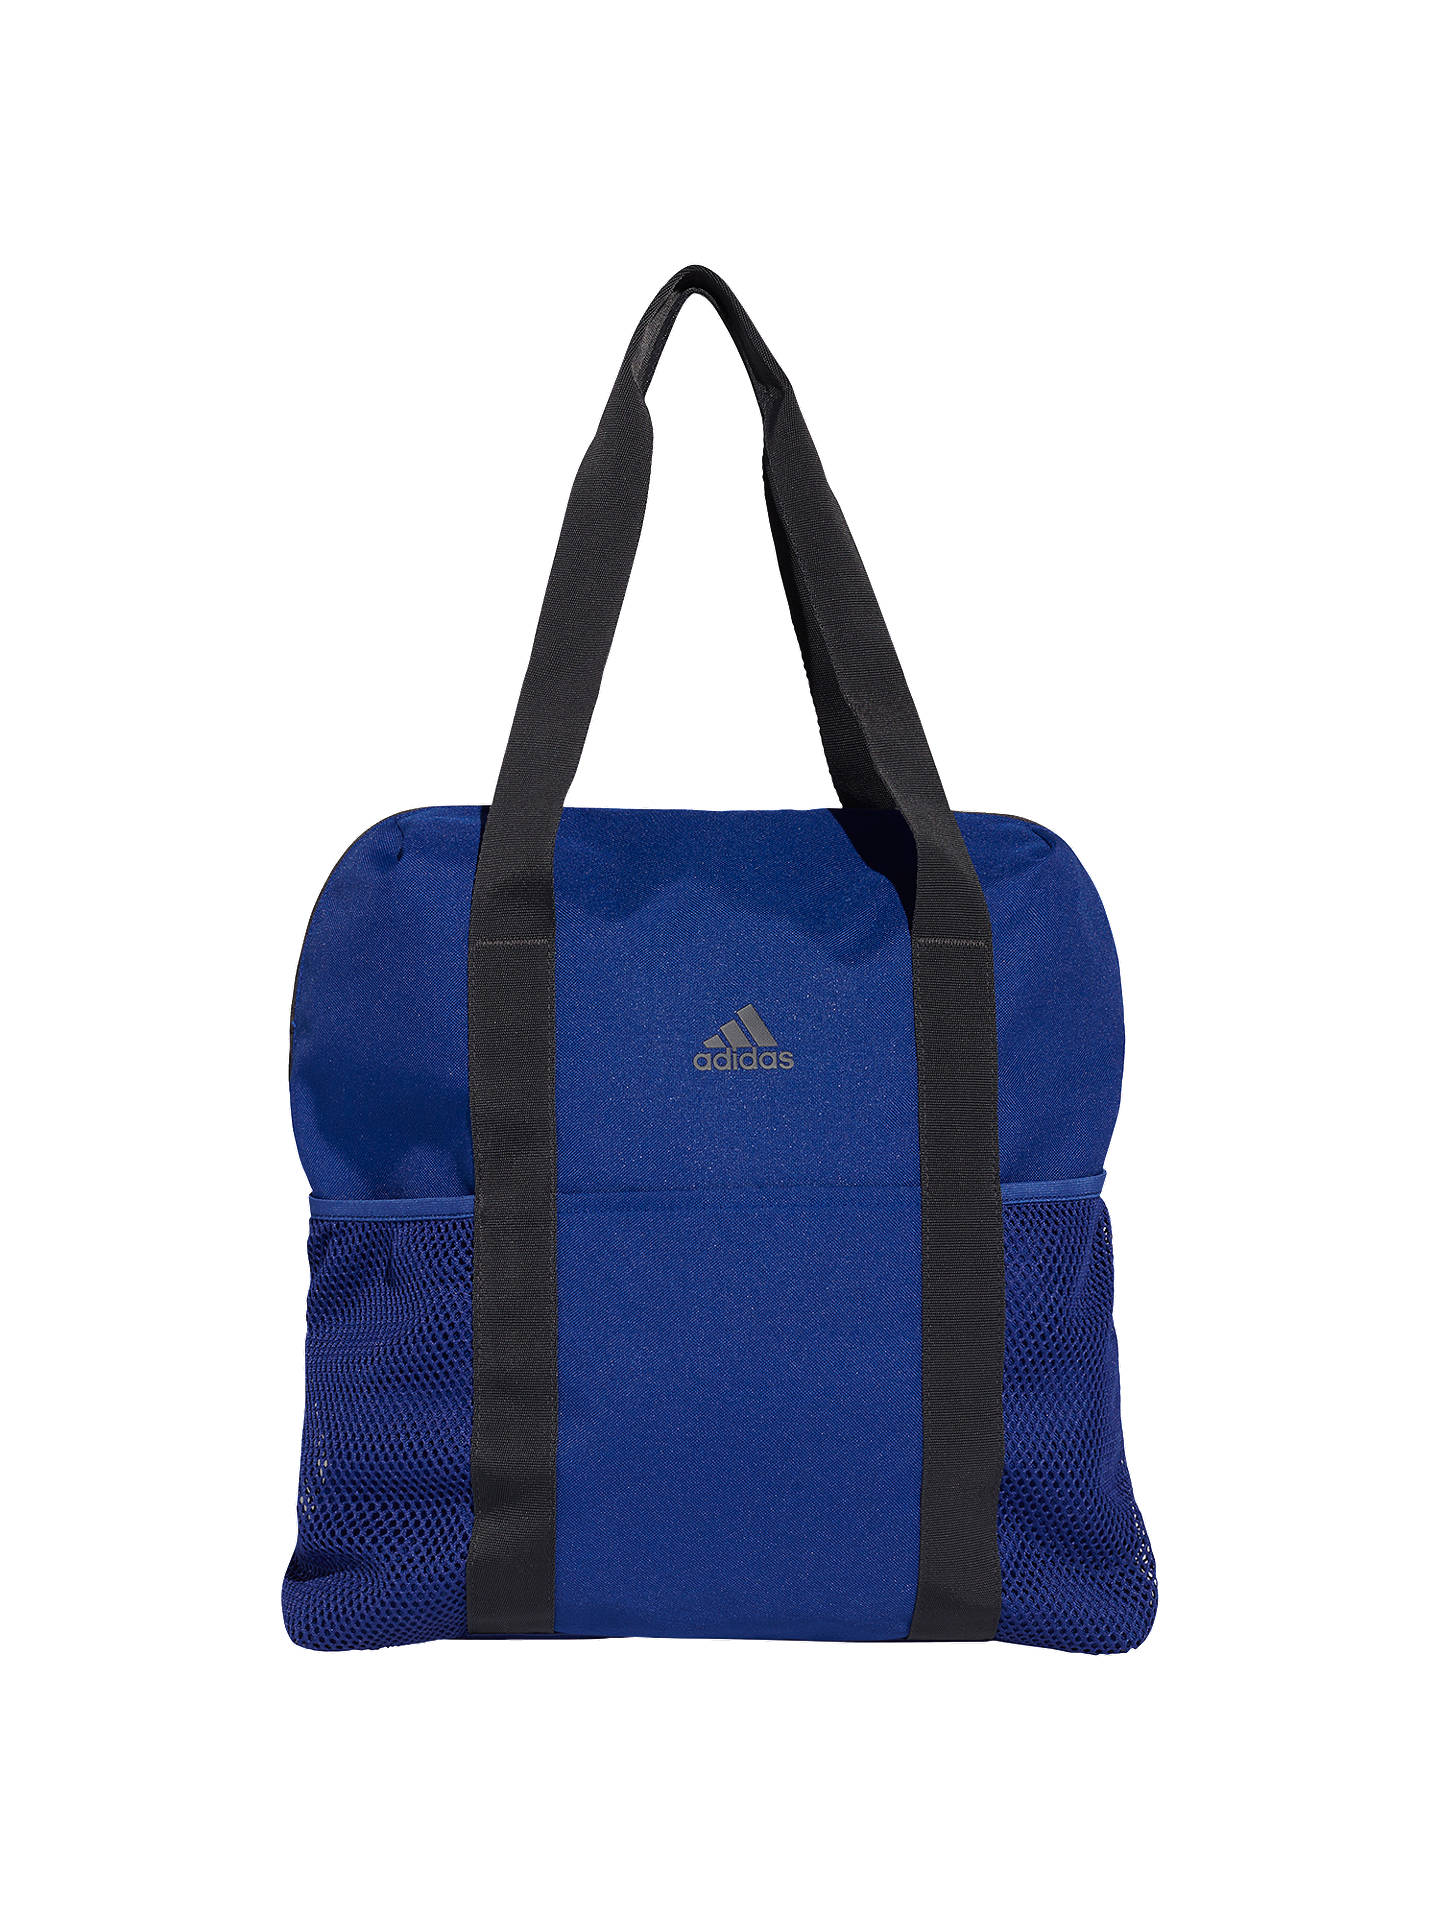 9bbc94f99 Buy adidas Training Tote Bag, Mystery Ink Online at johnlewis.com ...